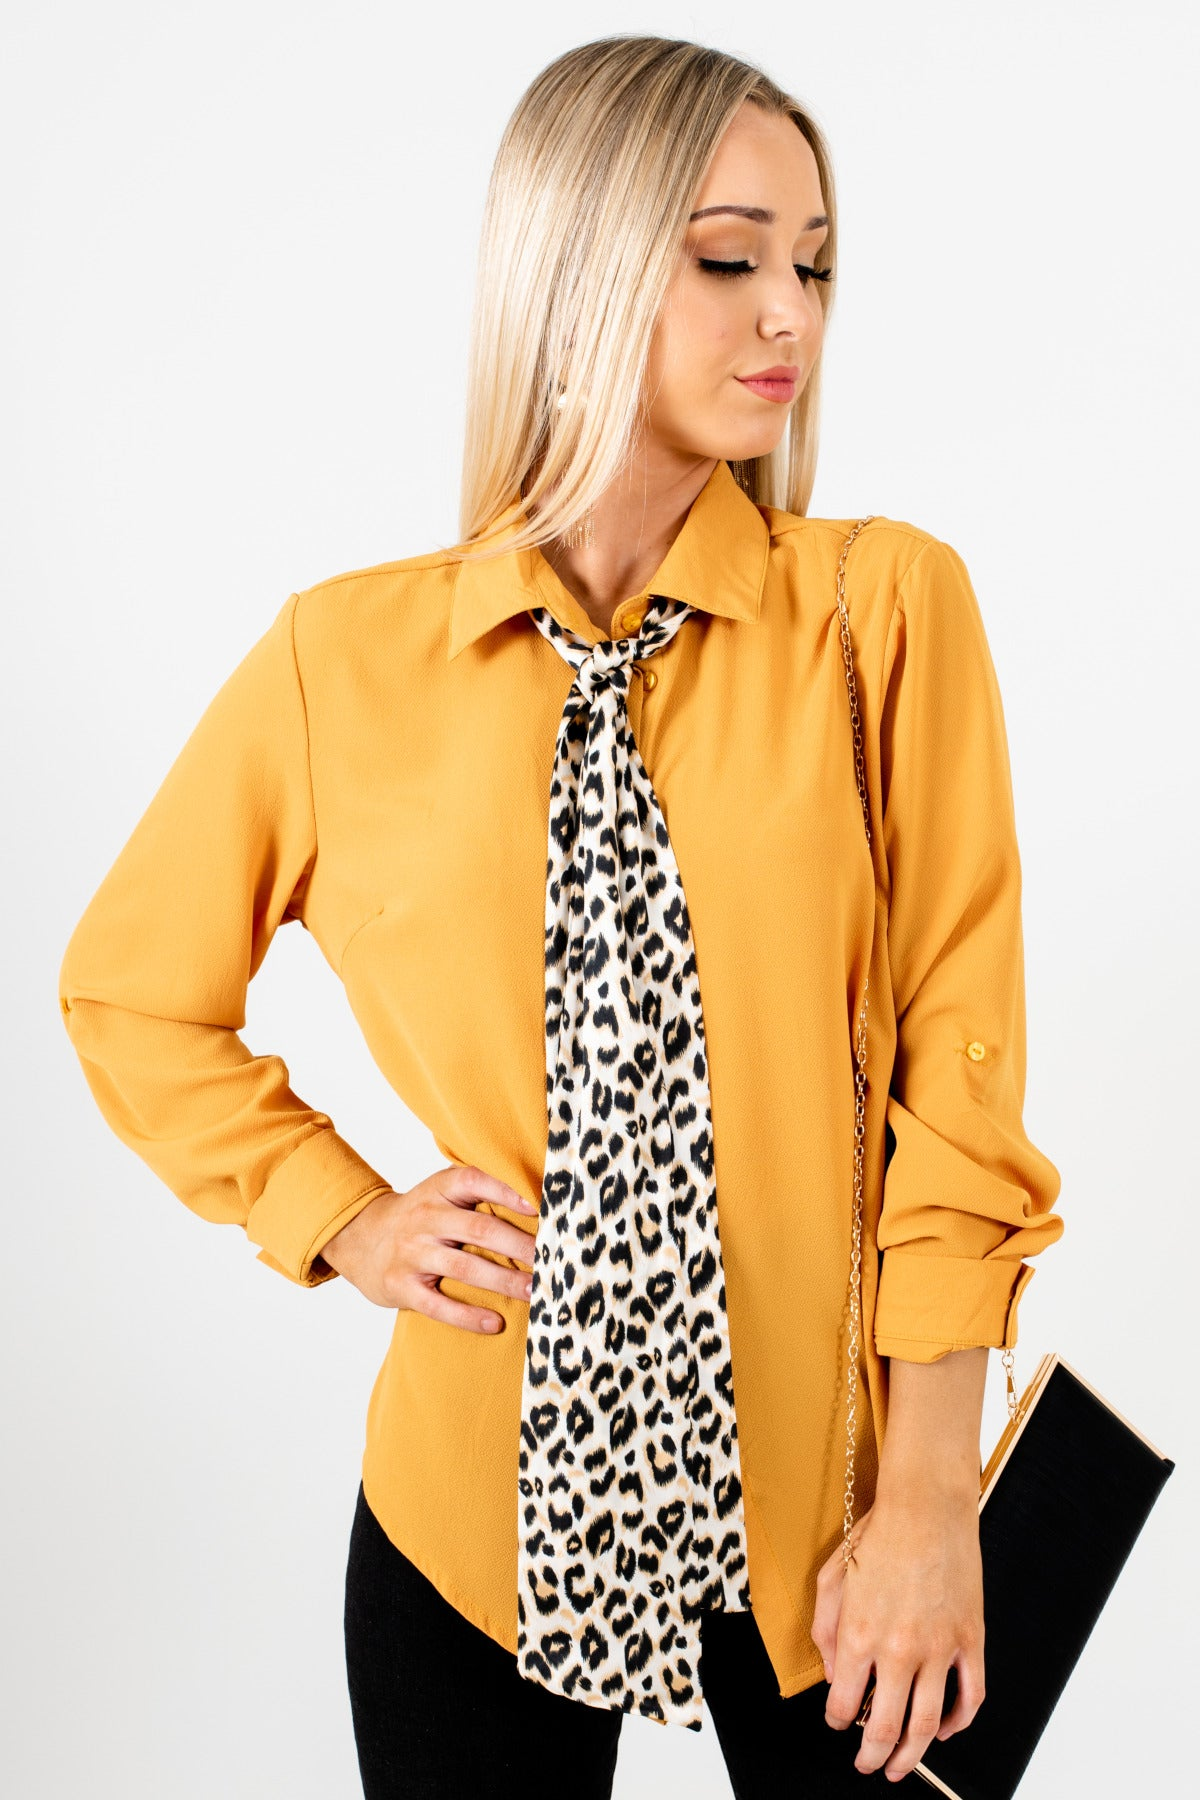 Mustard Yellow Button Up Shirt with Satin Leopard Print Tie